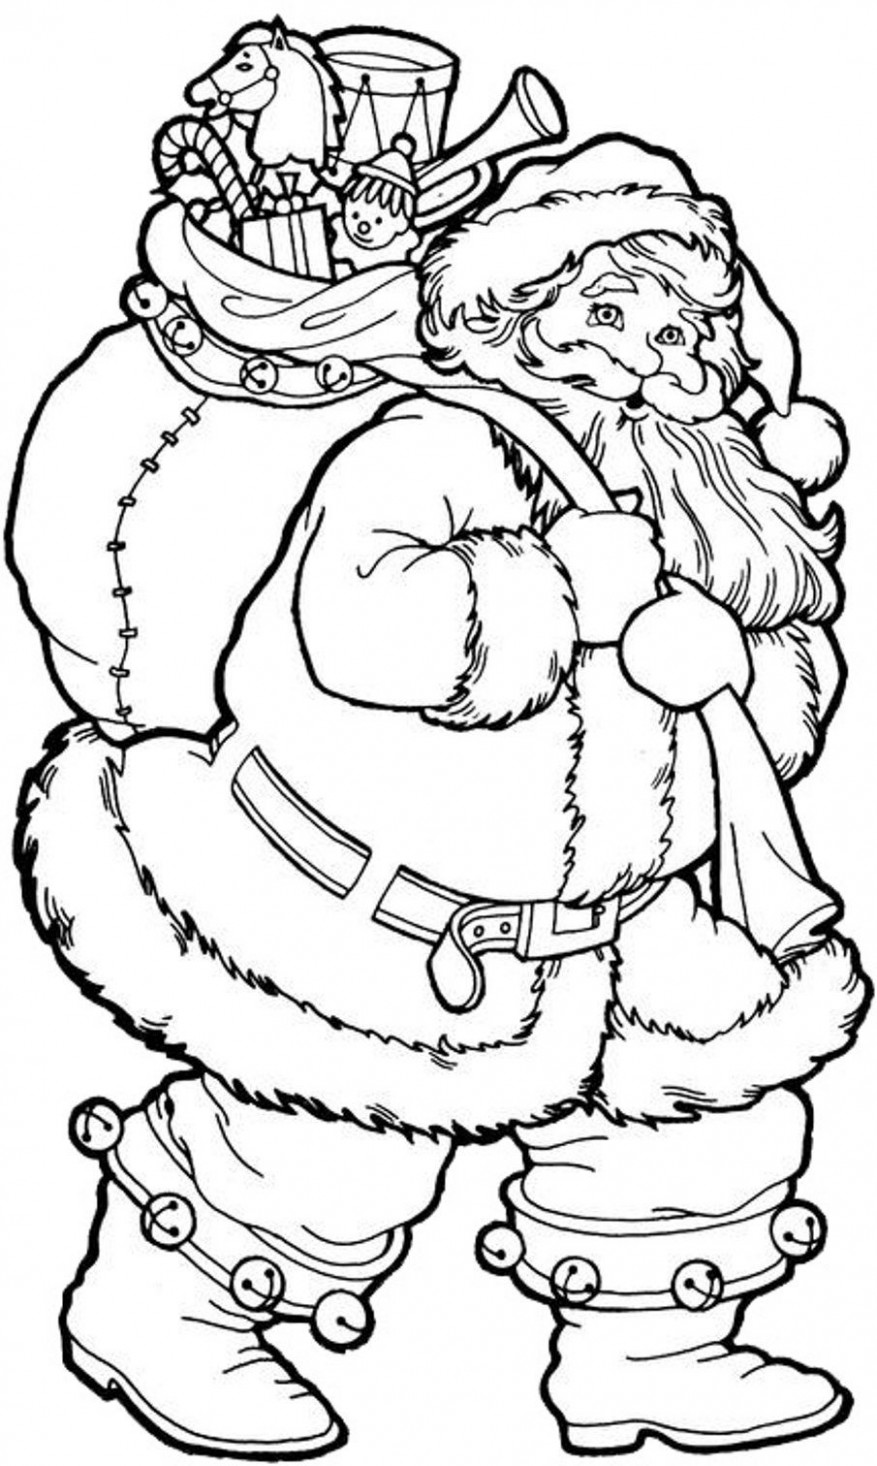 Santa Coloring Pages | Holiday Coloring Pages | Santa coloring pages ...